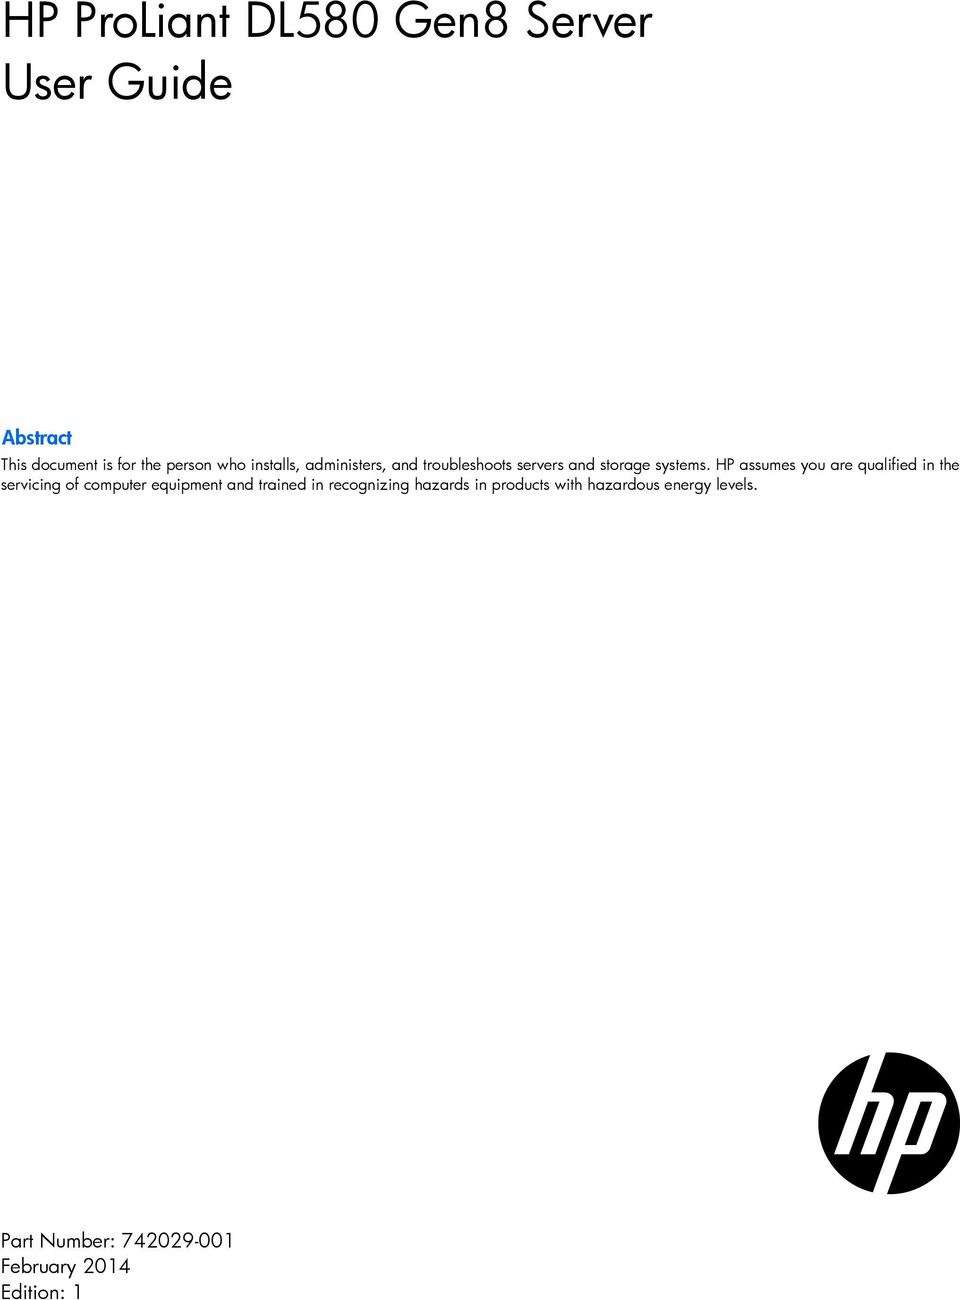 HP ProLiant DL580 Gen8 Server User Guide - PDF